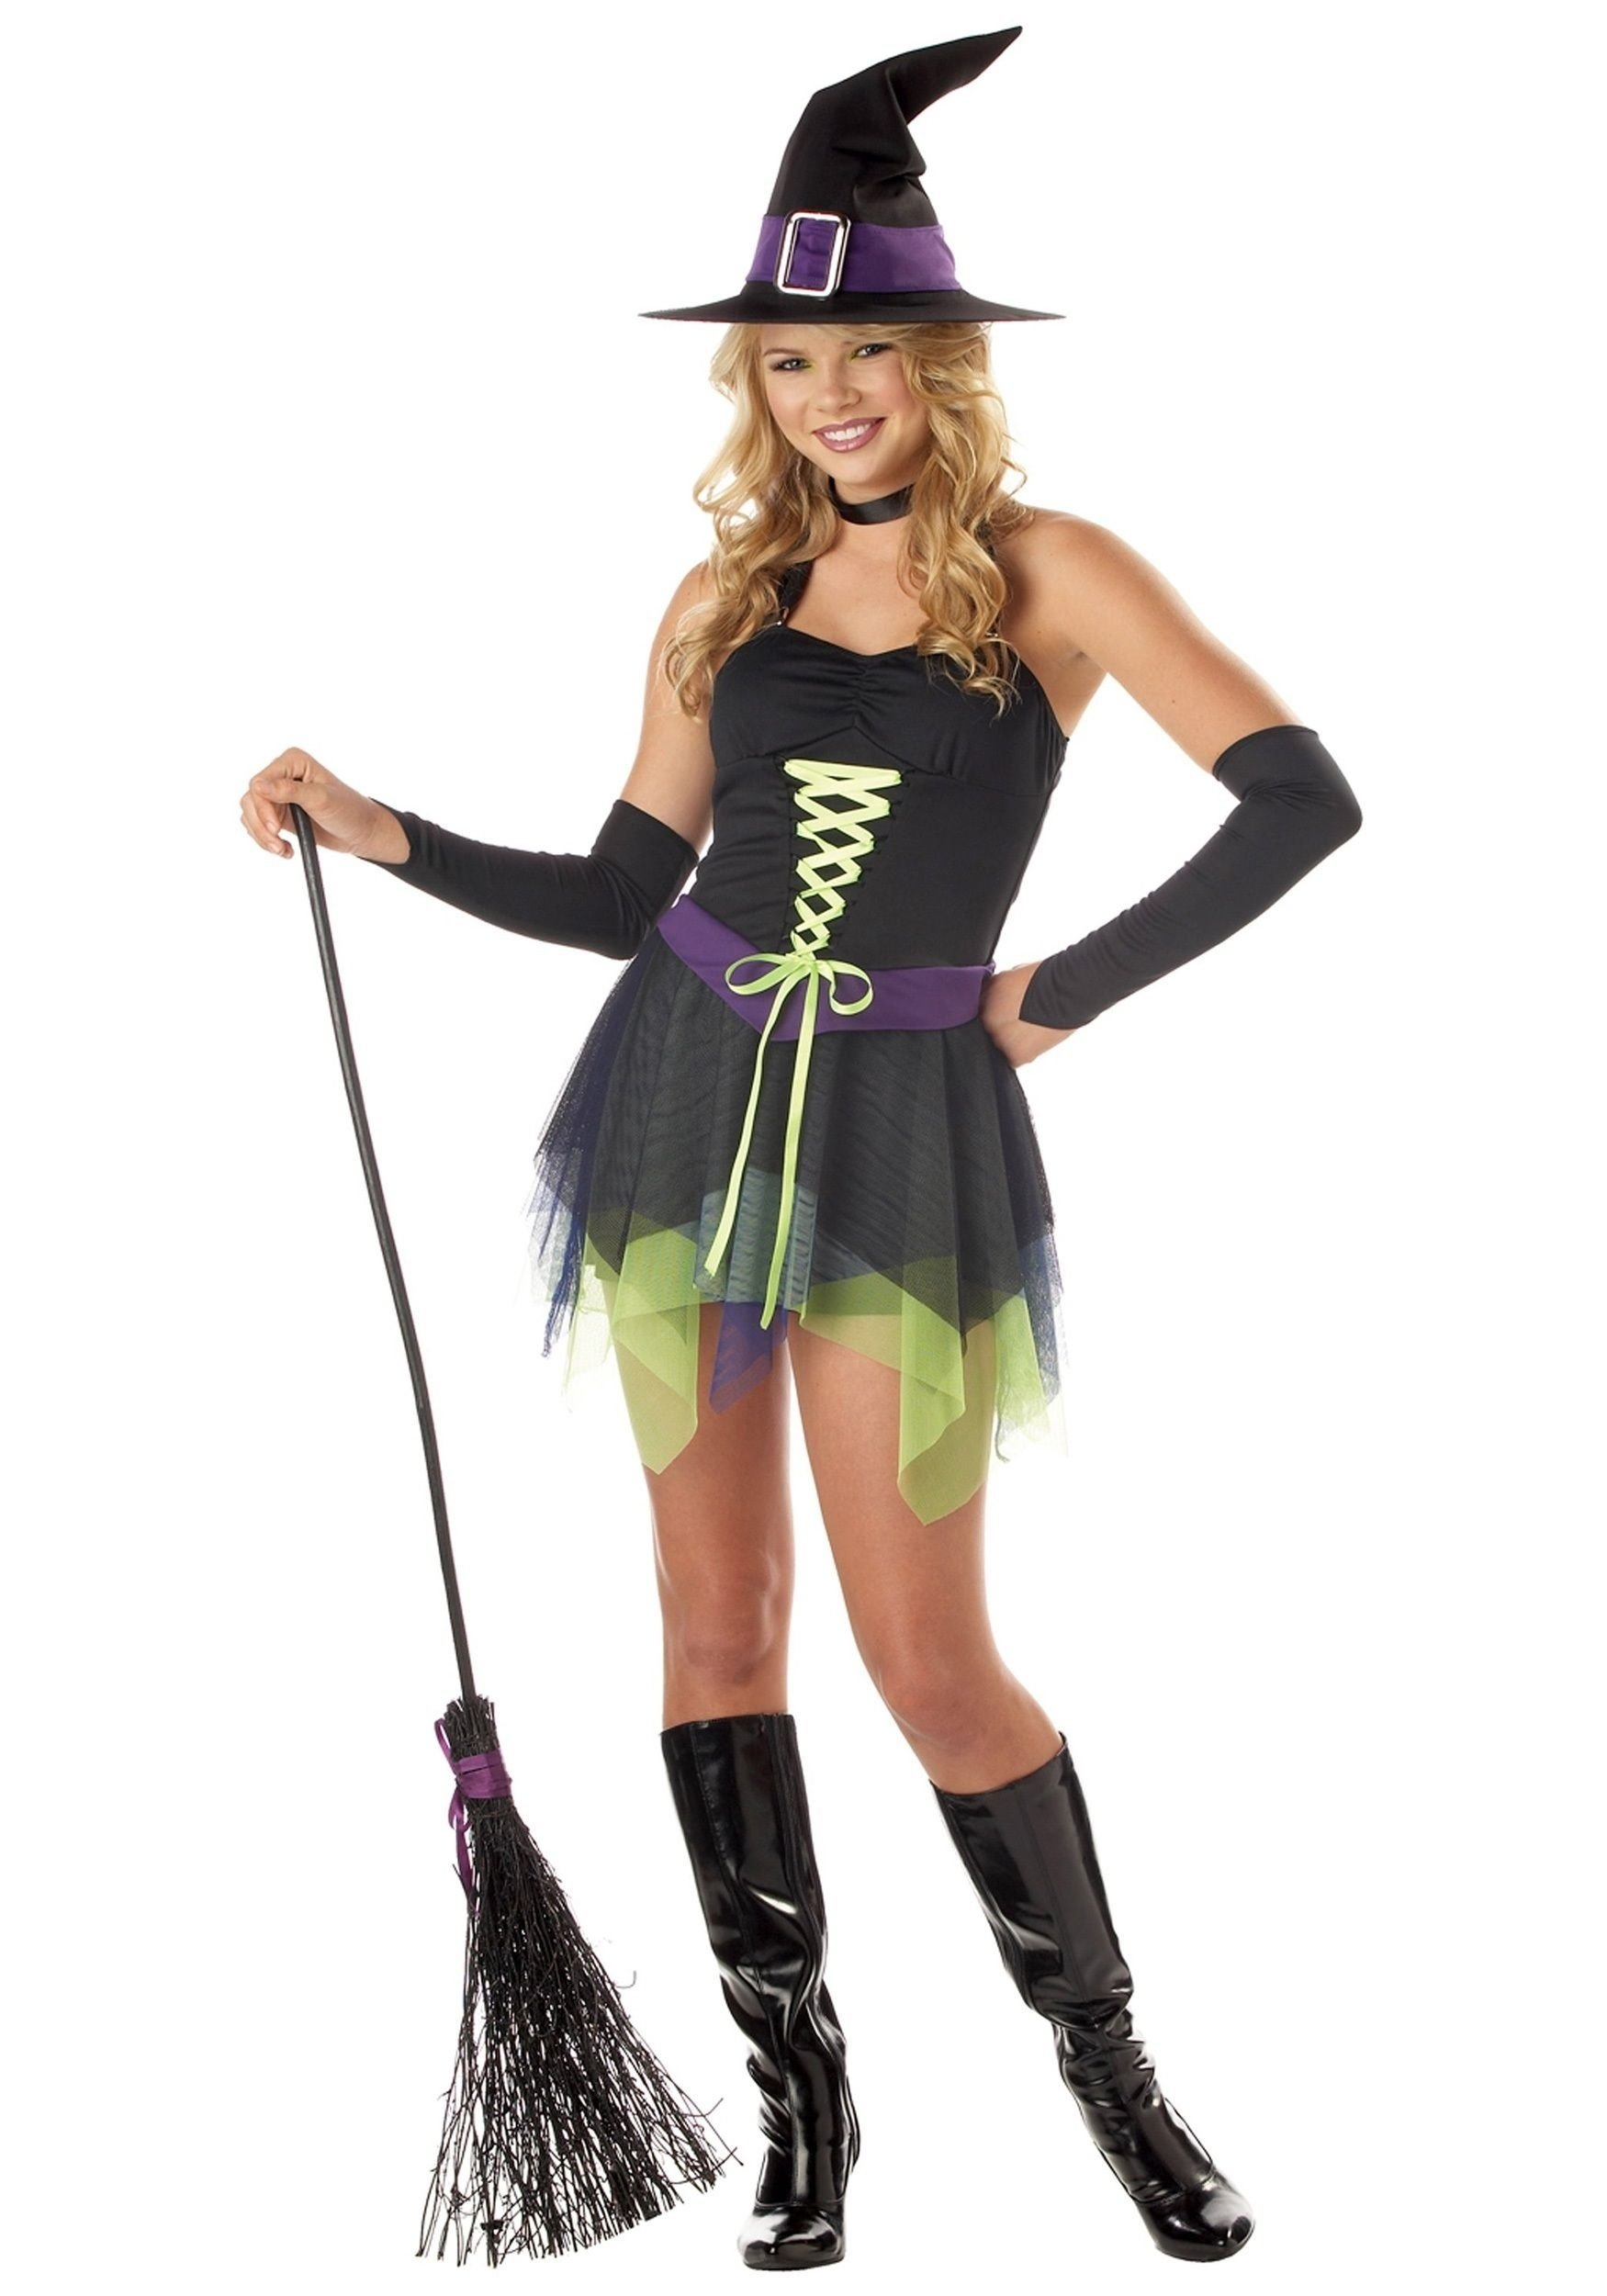 10 Wonderful Witch Costume Ideas For Women halloween costume ideas witch costumes teenage whimsical witch 2020